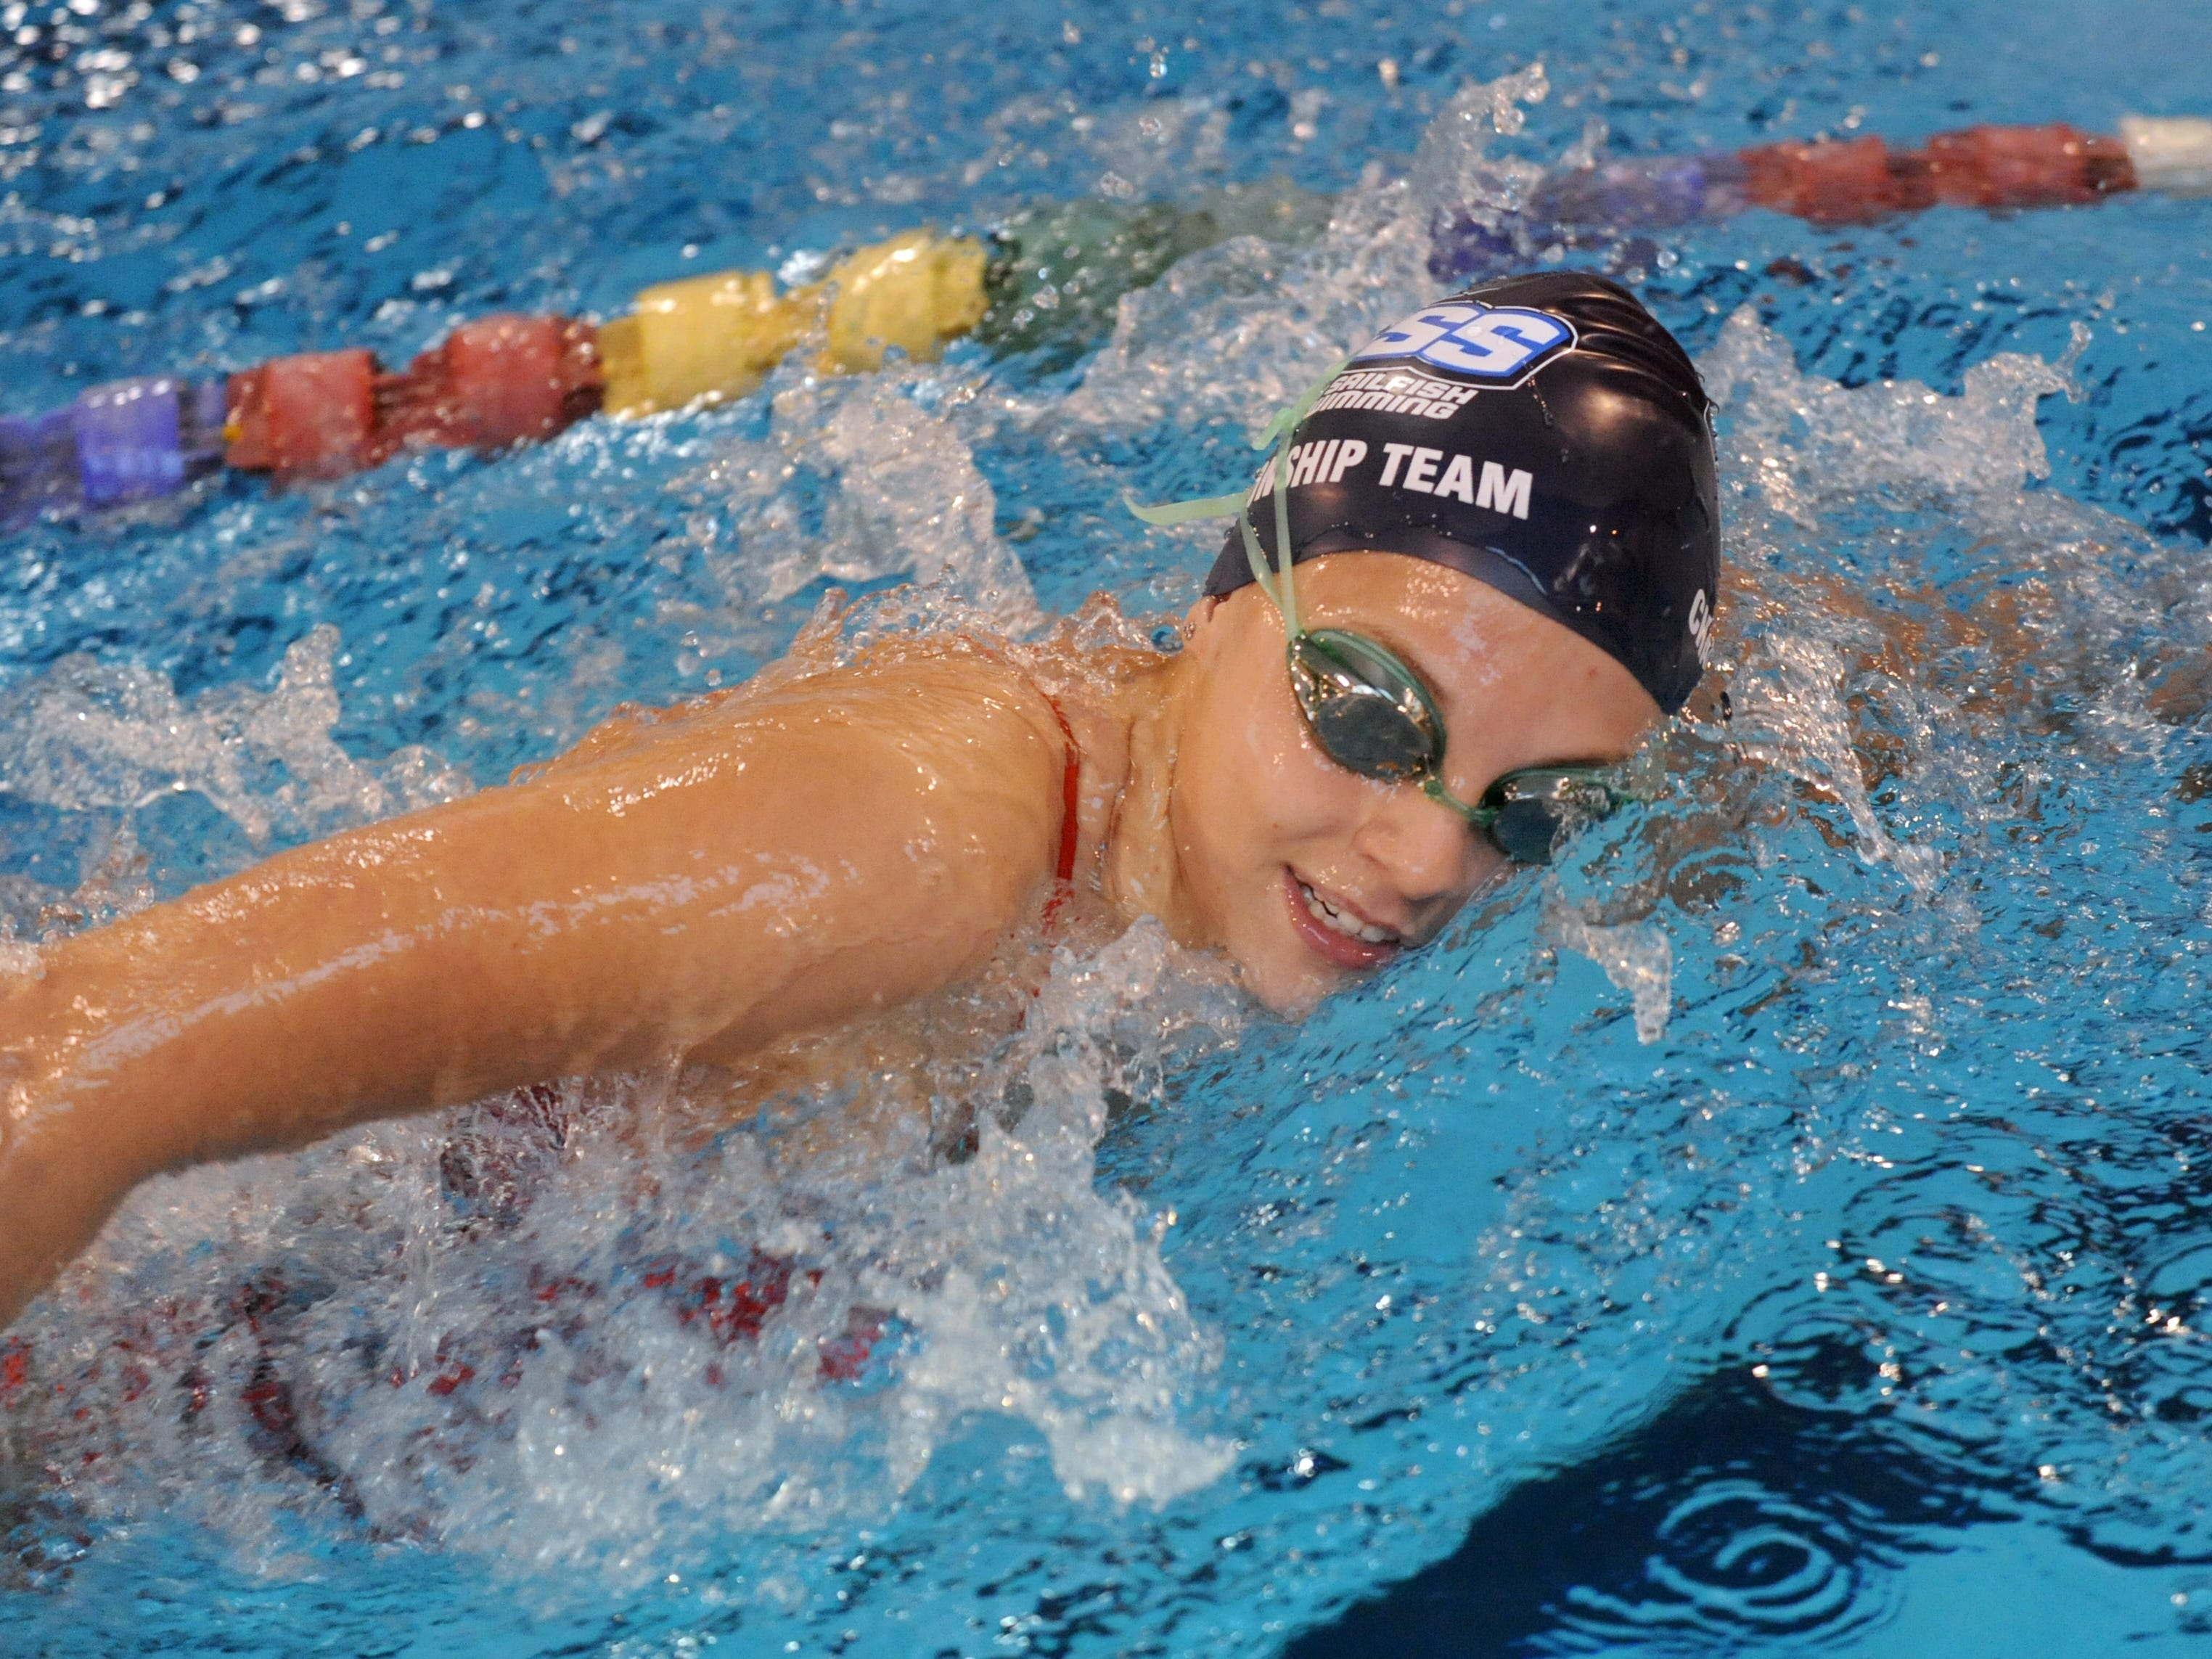 Gulf Breeze junior Tori Bindi seeks a third consecutive year of winning state swim titles at this weekend's Class 2A state championship meet in Stuart, located north of West Palm Beach. Washington girls are also seeking repeat.